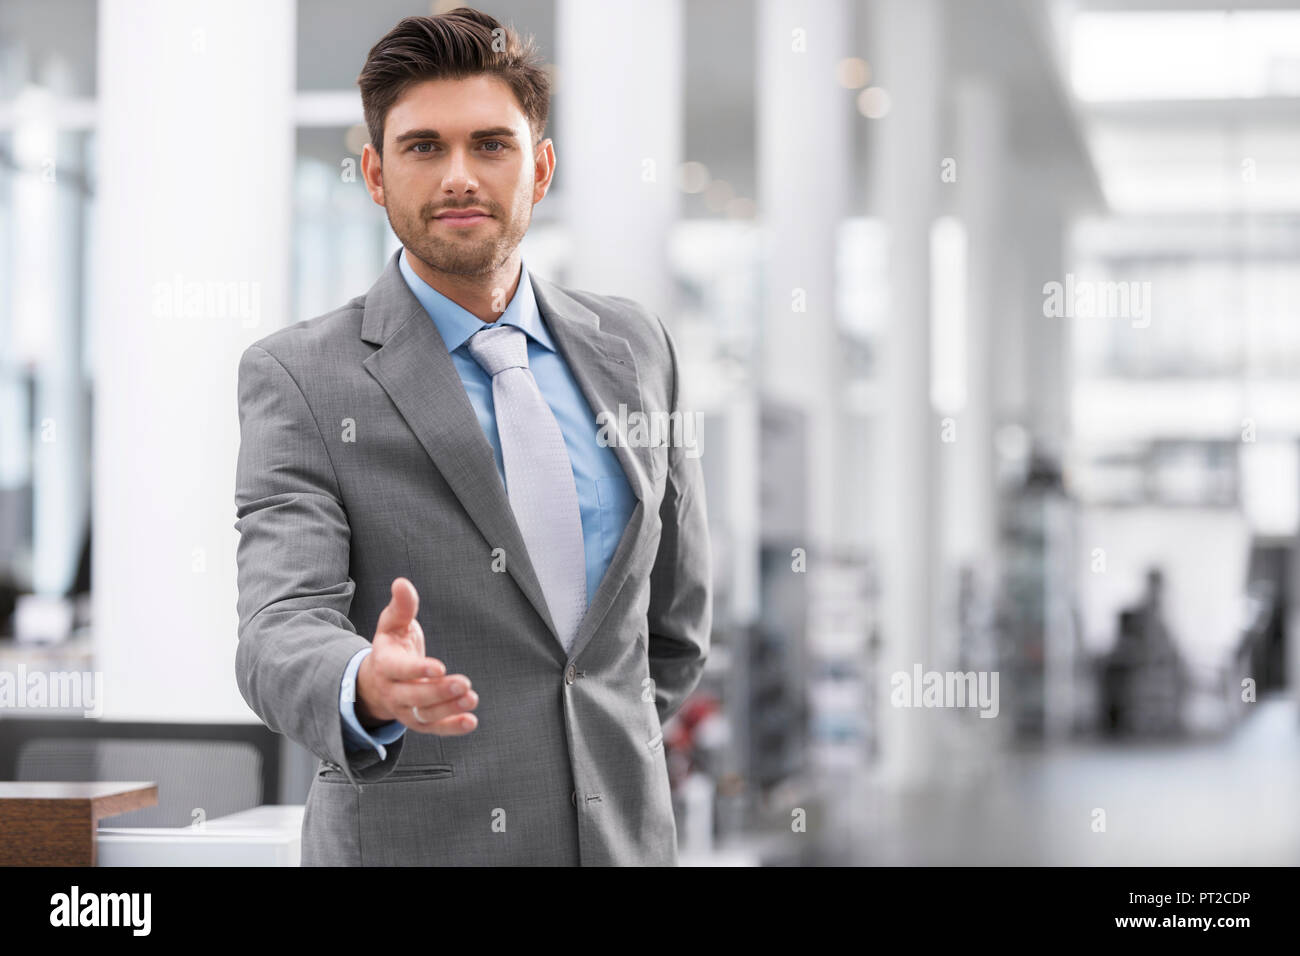 Businessman reaching out his hand - Stock Image